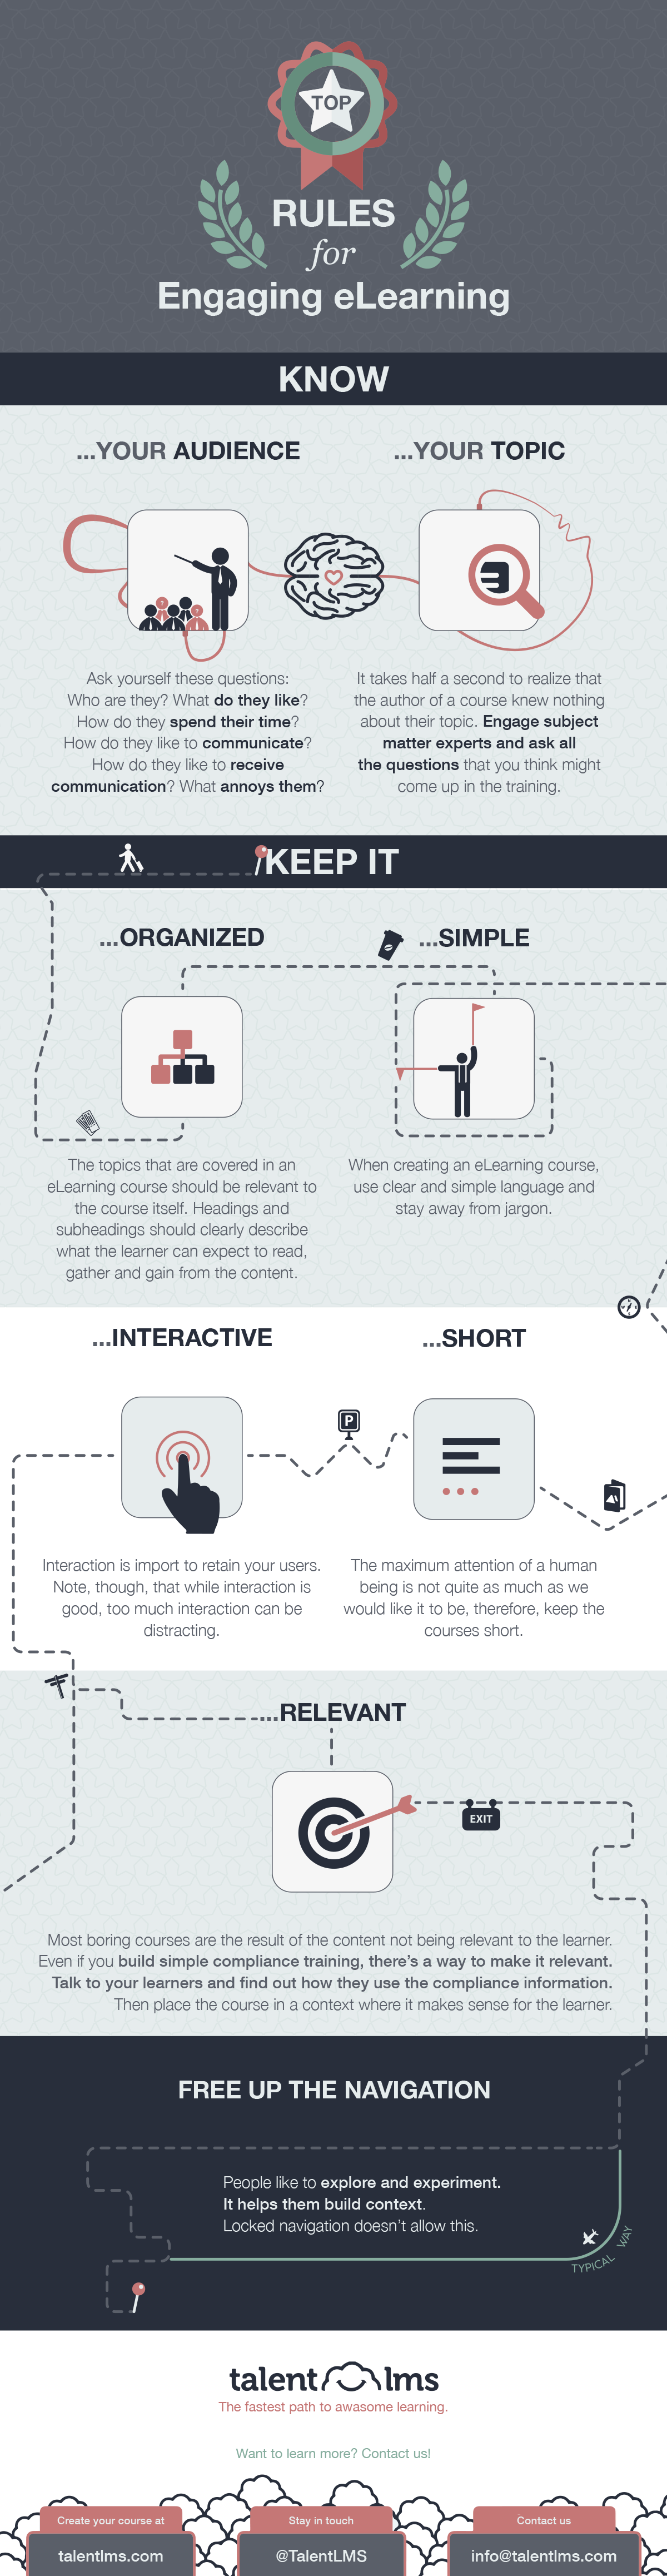 e-learning Infographic: Rules for engaging elearning